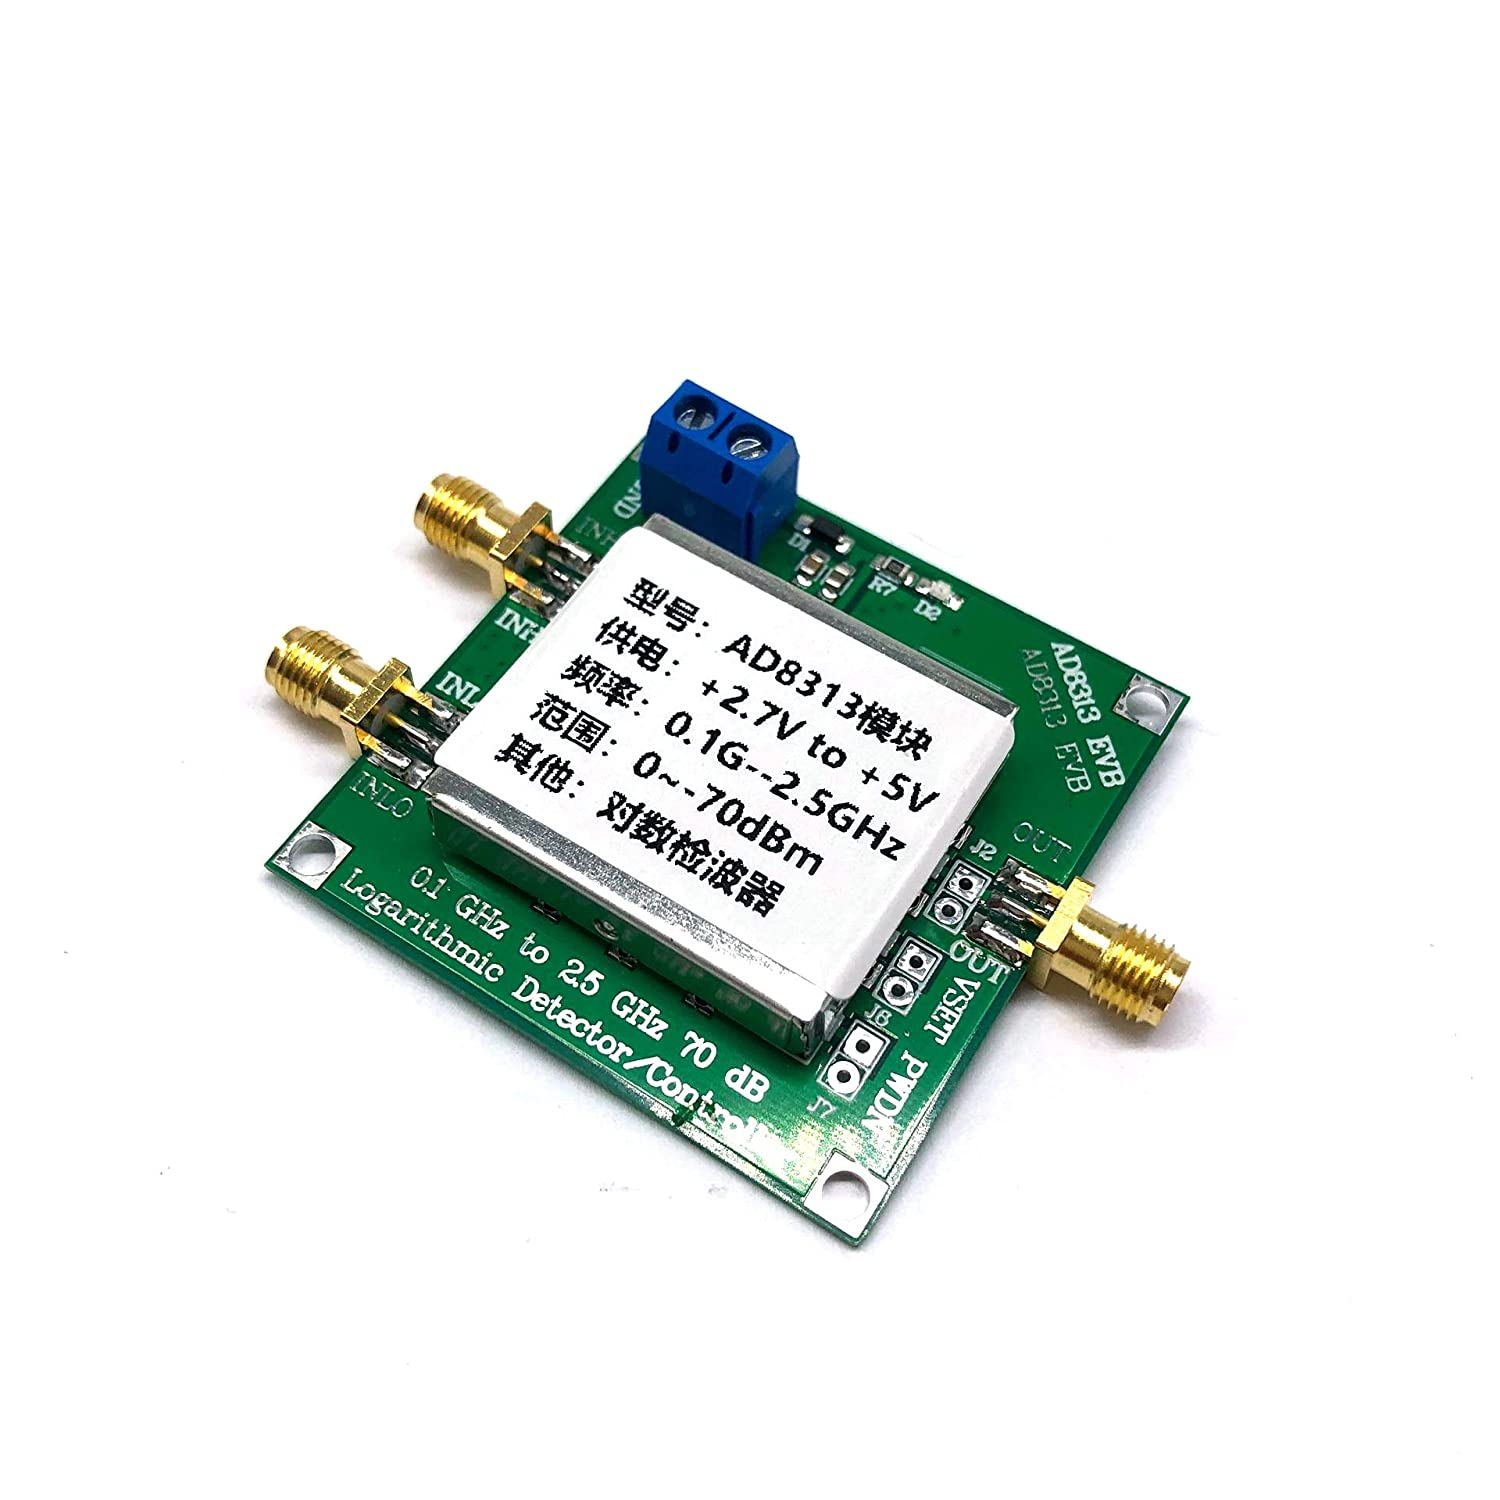 free Ngkc3C 0.1 GHz to 2.5 GHz70 Relay 5V Controller D New mail order DB Logarithm